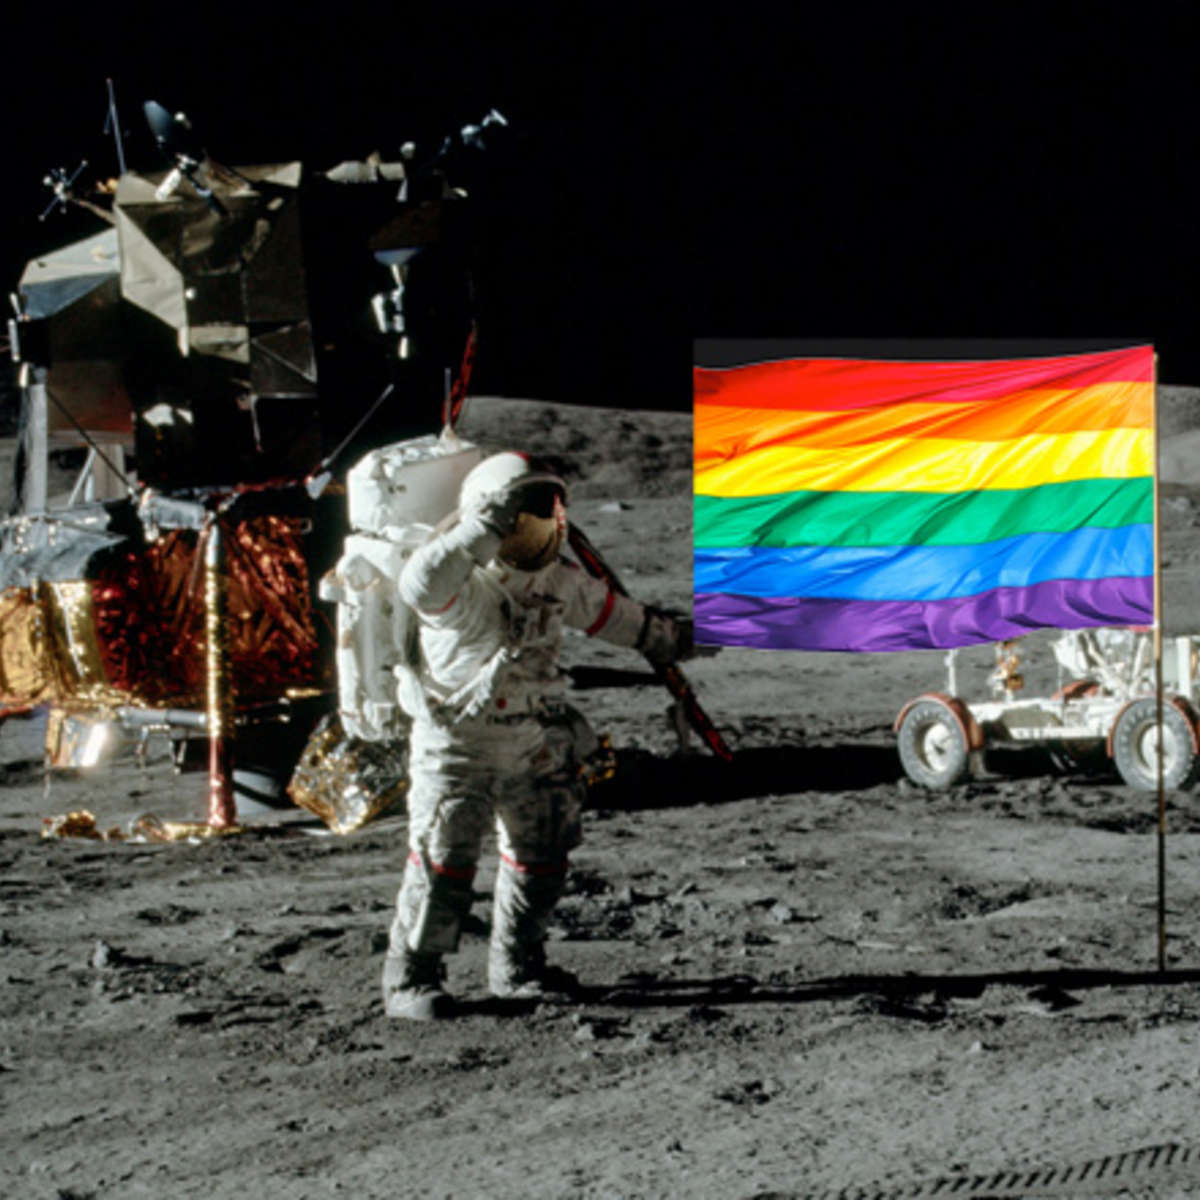 apollo17_rainbowflag_0.jpg